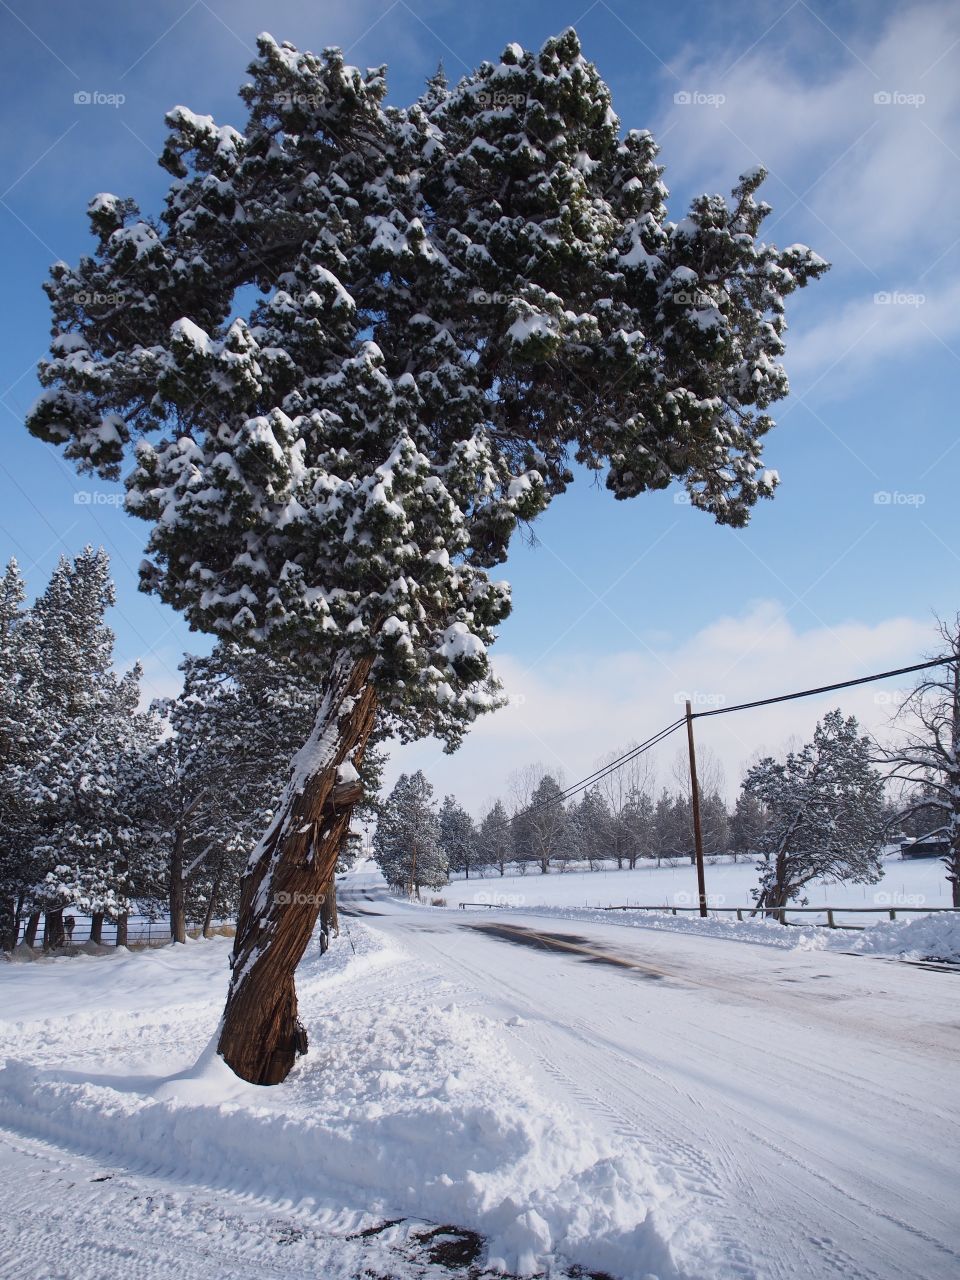 A juniper tree covered in fresh snow hangs over a snow covered rural country road in Central Oregon on a beautiful sunny day.